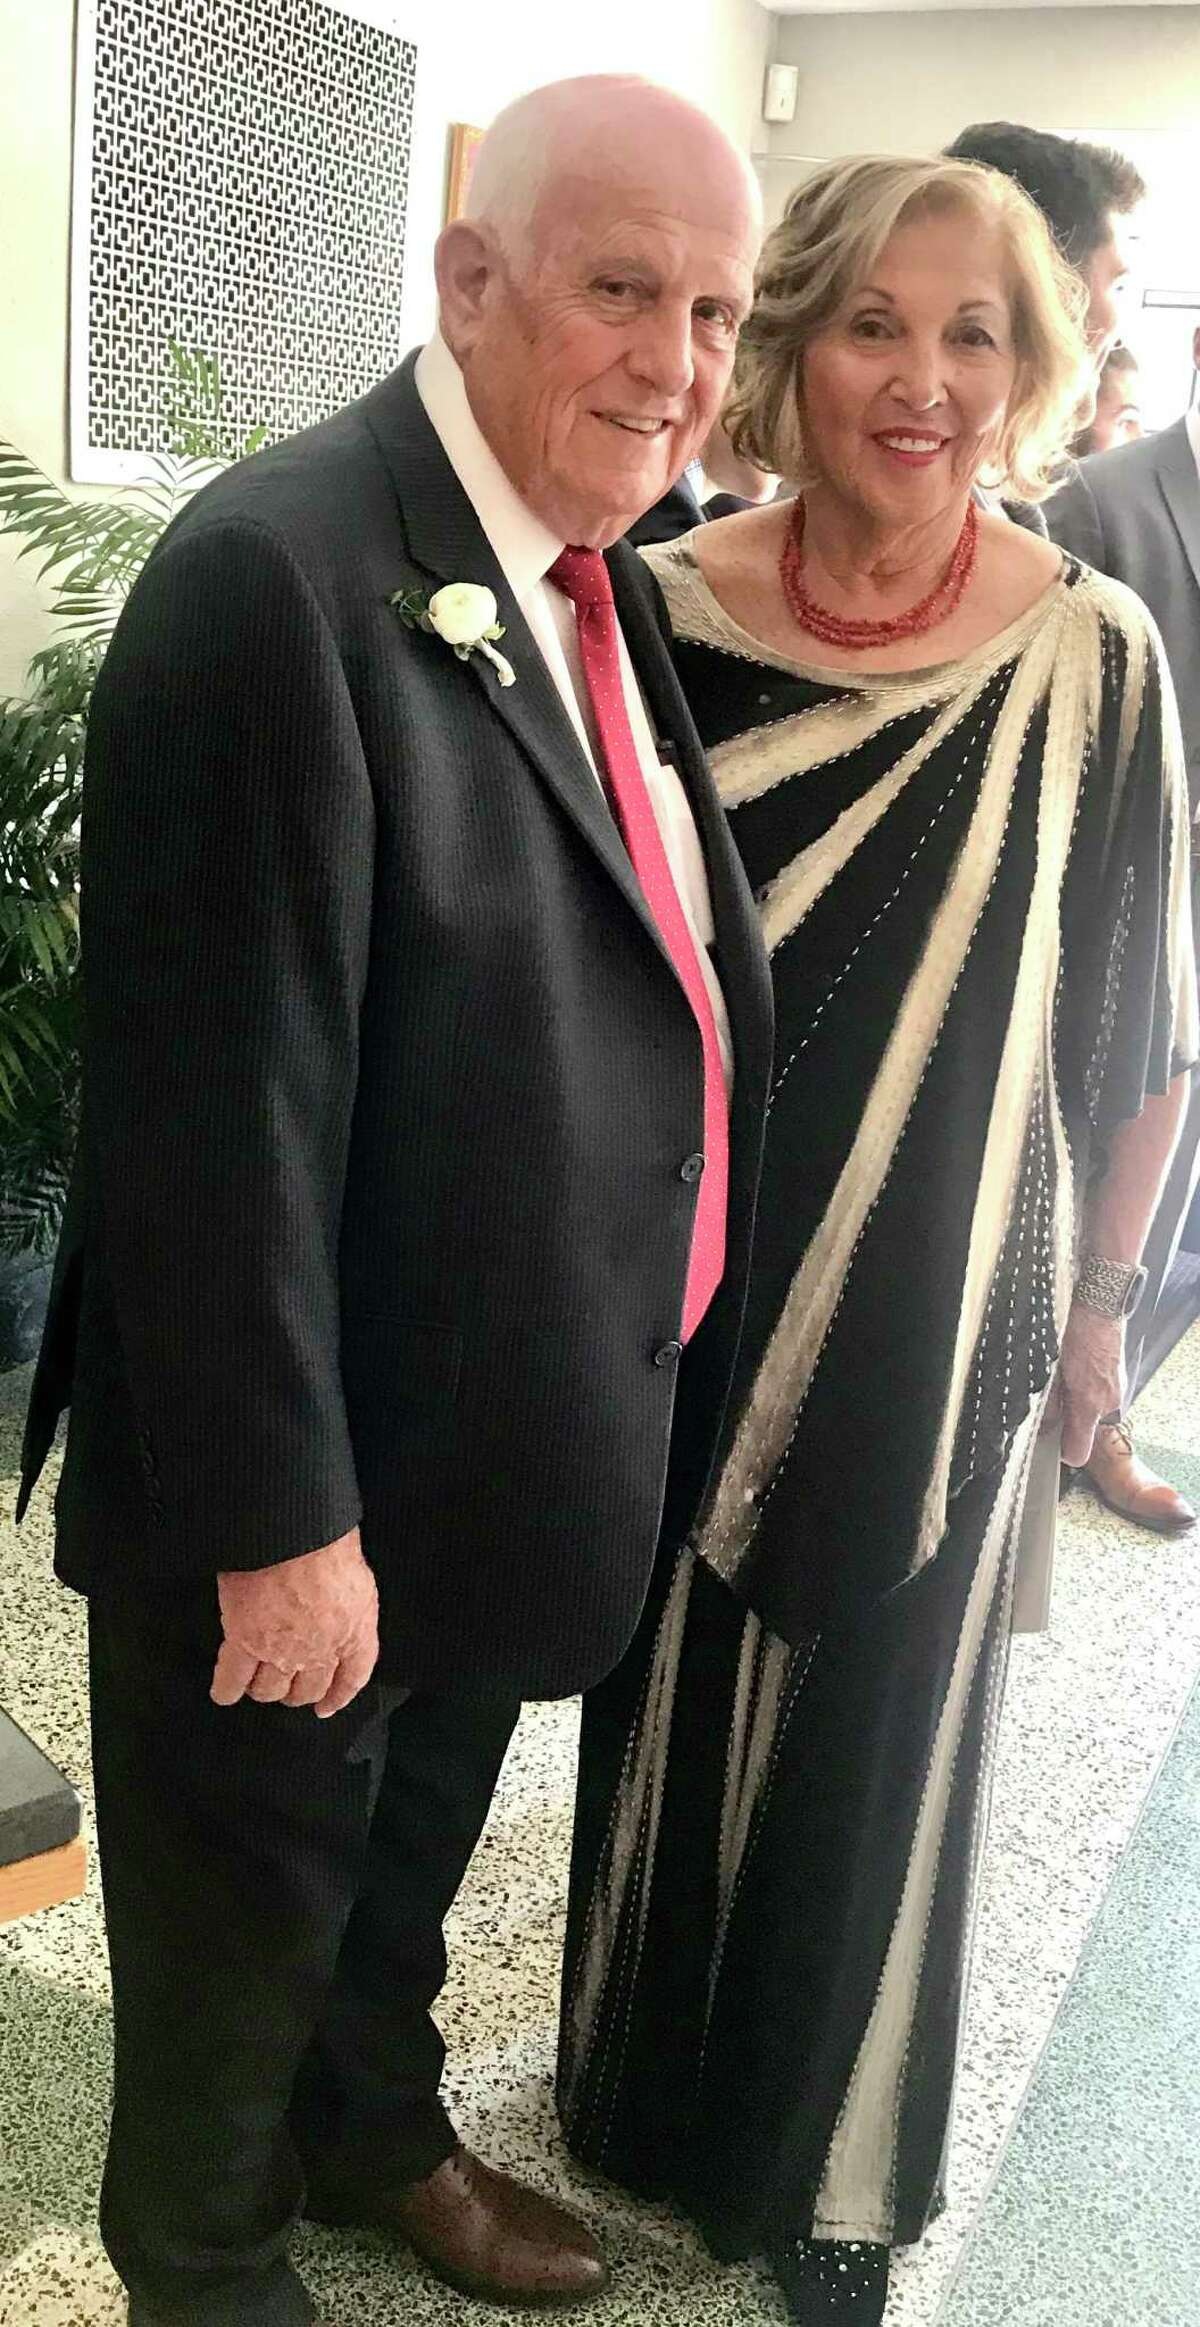 The late former East Haven Mayor Hank Luzzi, left, and his wife, Claire.